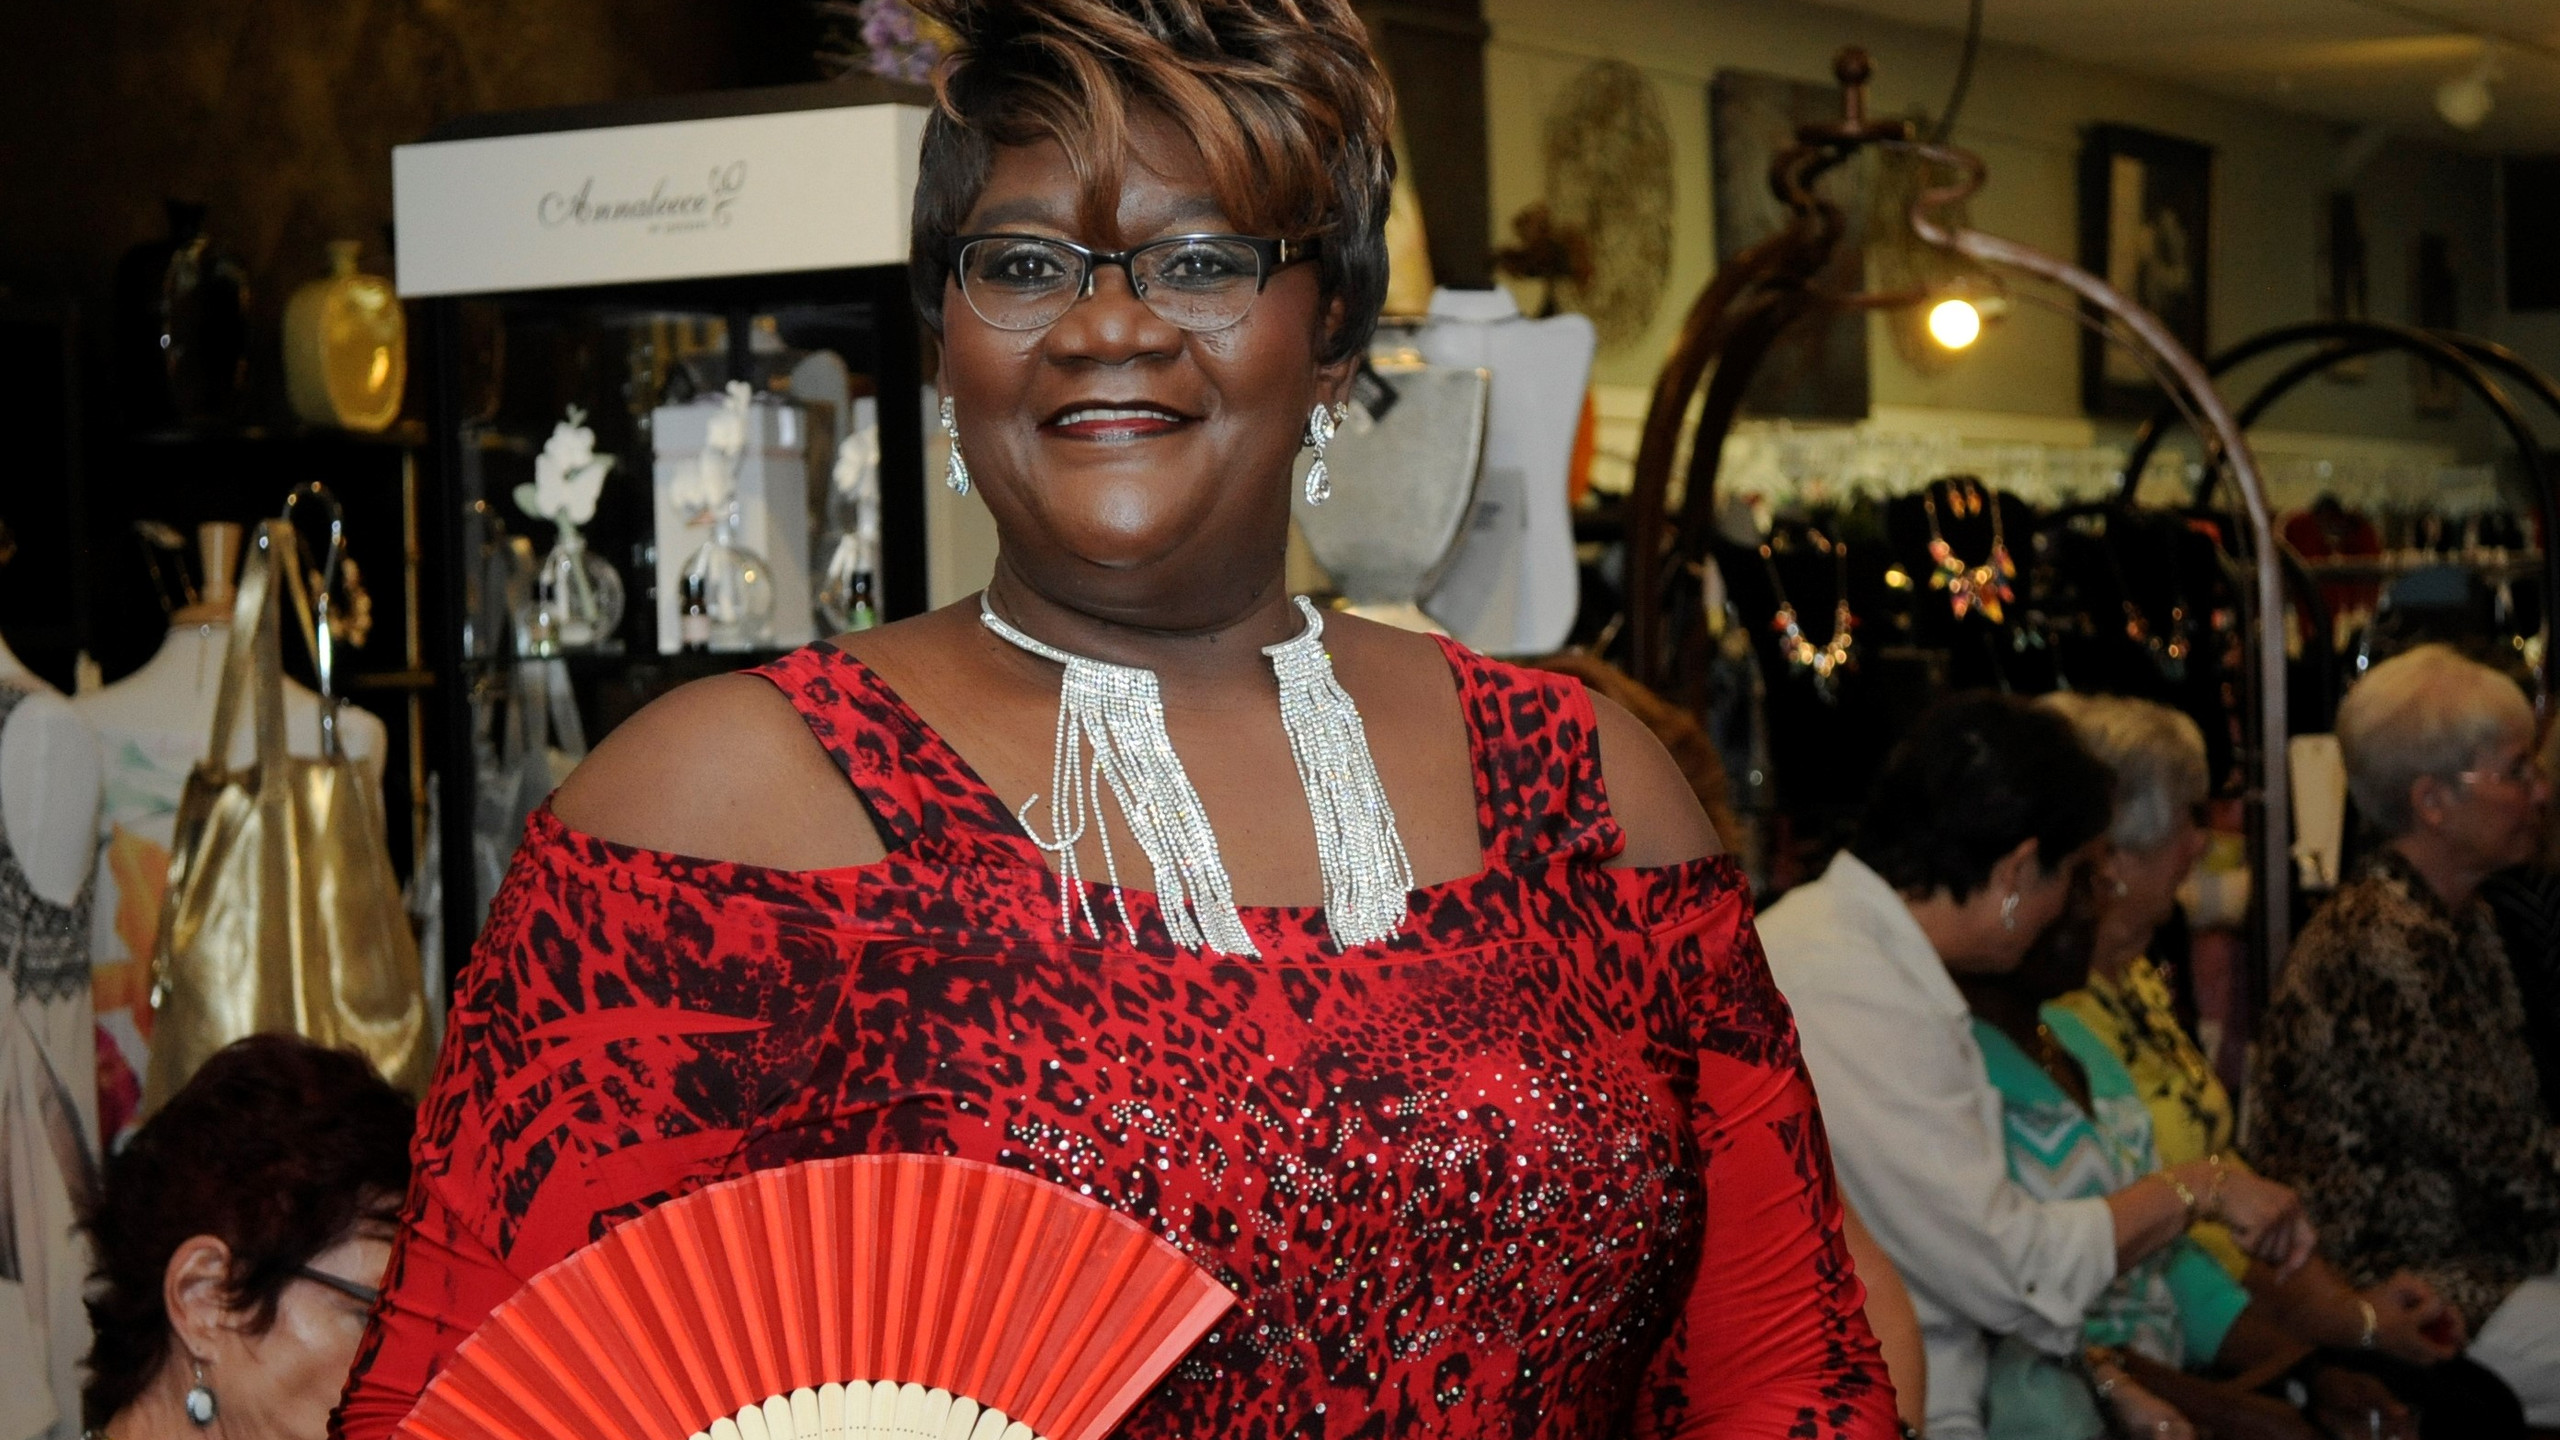 Lady in red at Chez Jacqueline Gift Shop in Palm Coast fashion event hosted by The Sheltering Tree